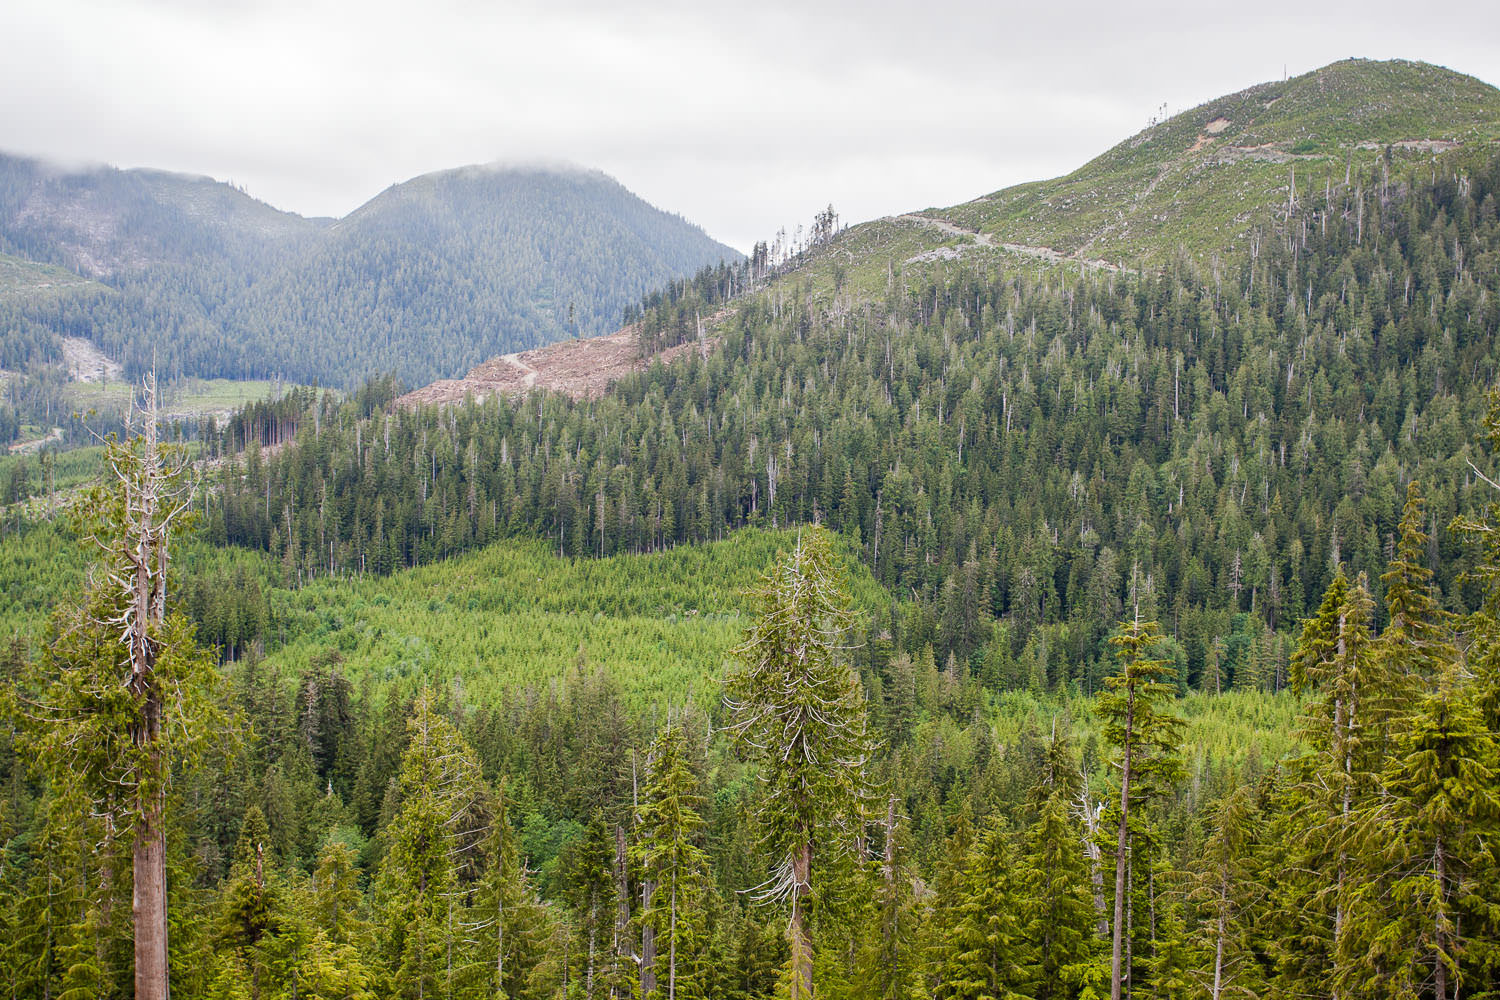 klanawa-valley-old-growth-forest-before.jpg